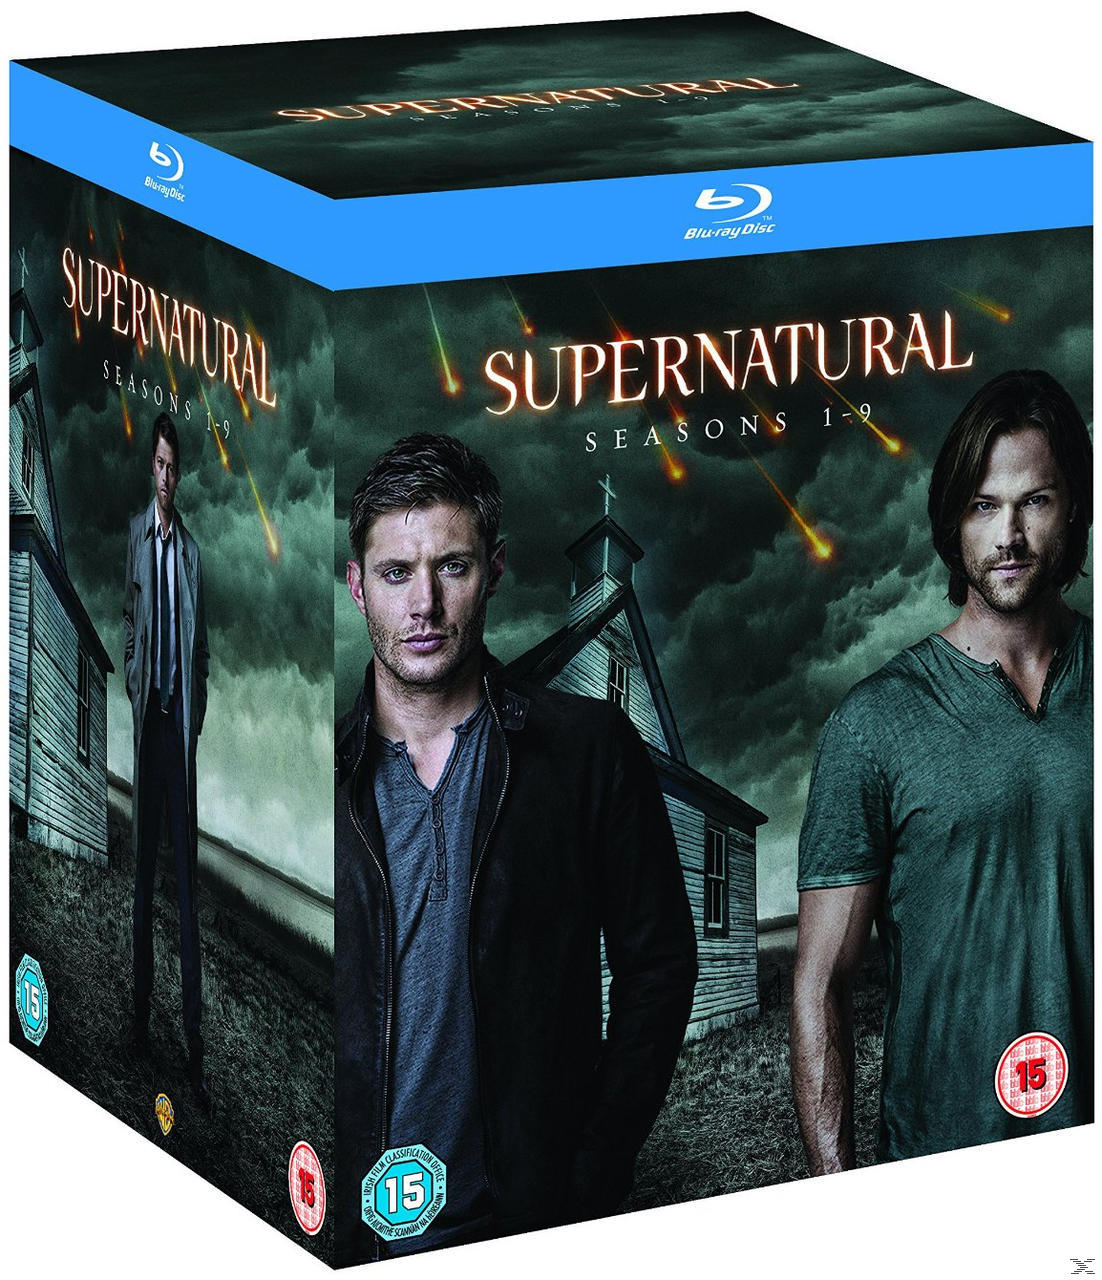 SUPERNATURAL S1-9[BLU RAY]